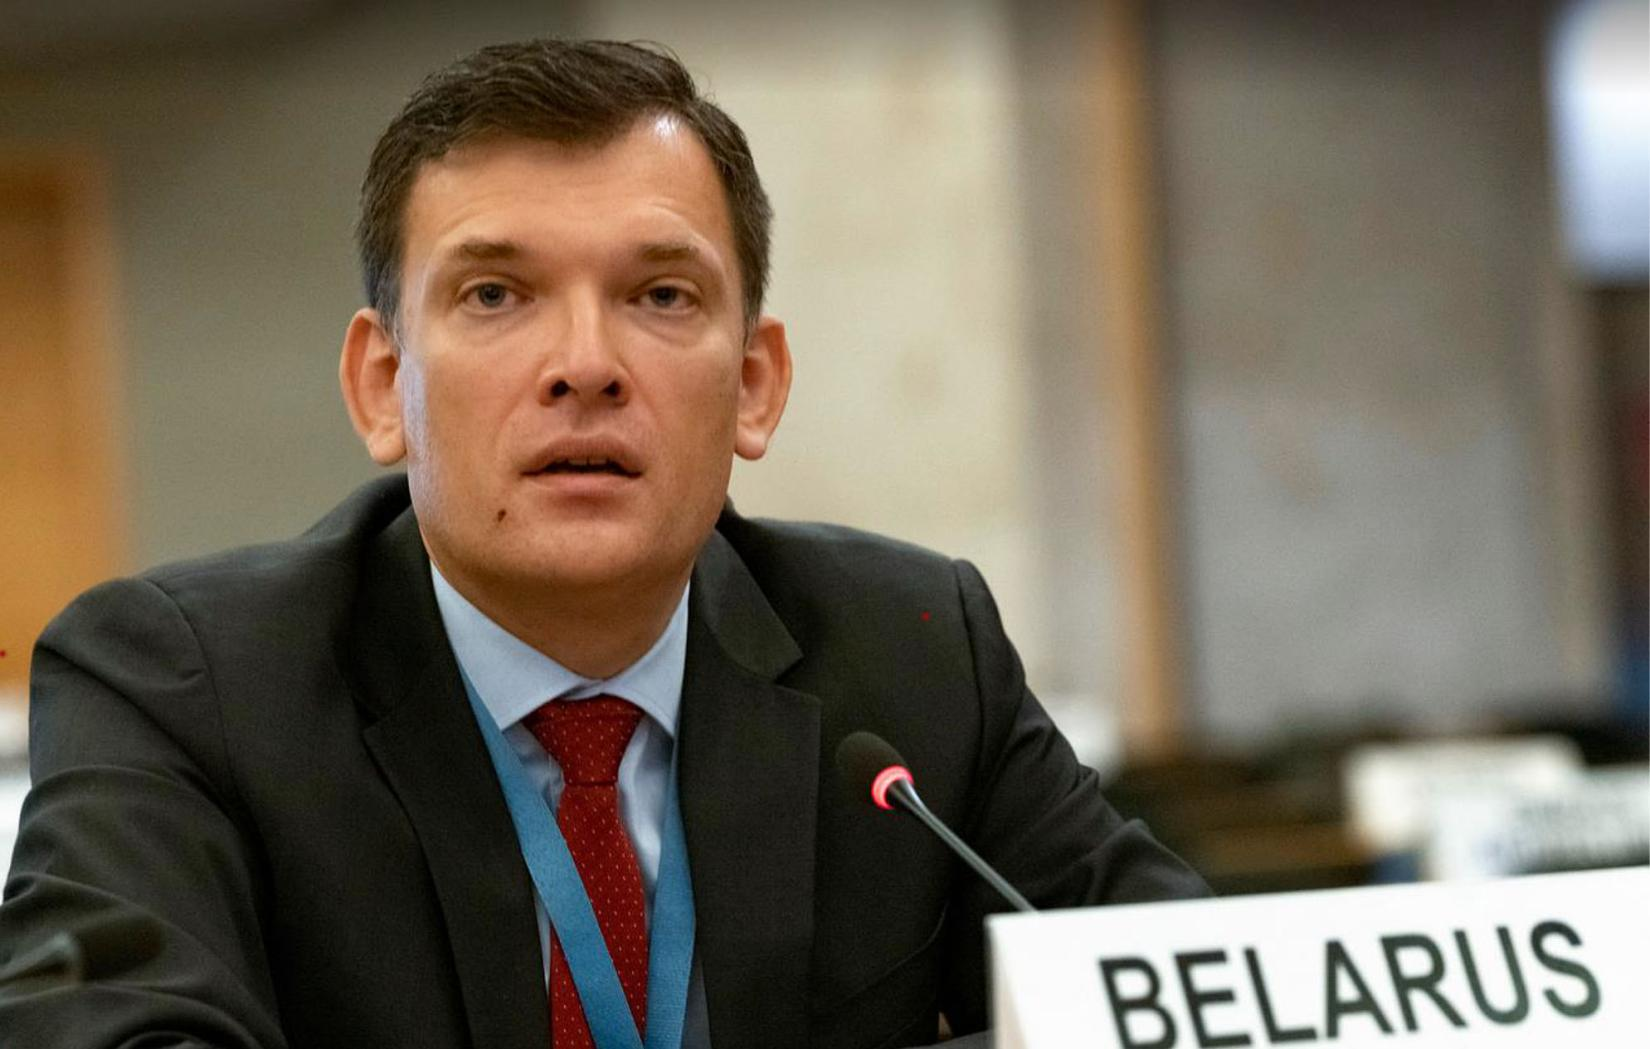 Yury Ambrazevich, Permanent Representative of Belarus to the UN Office at Geneva.